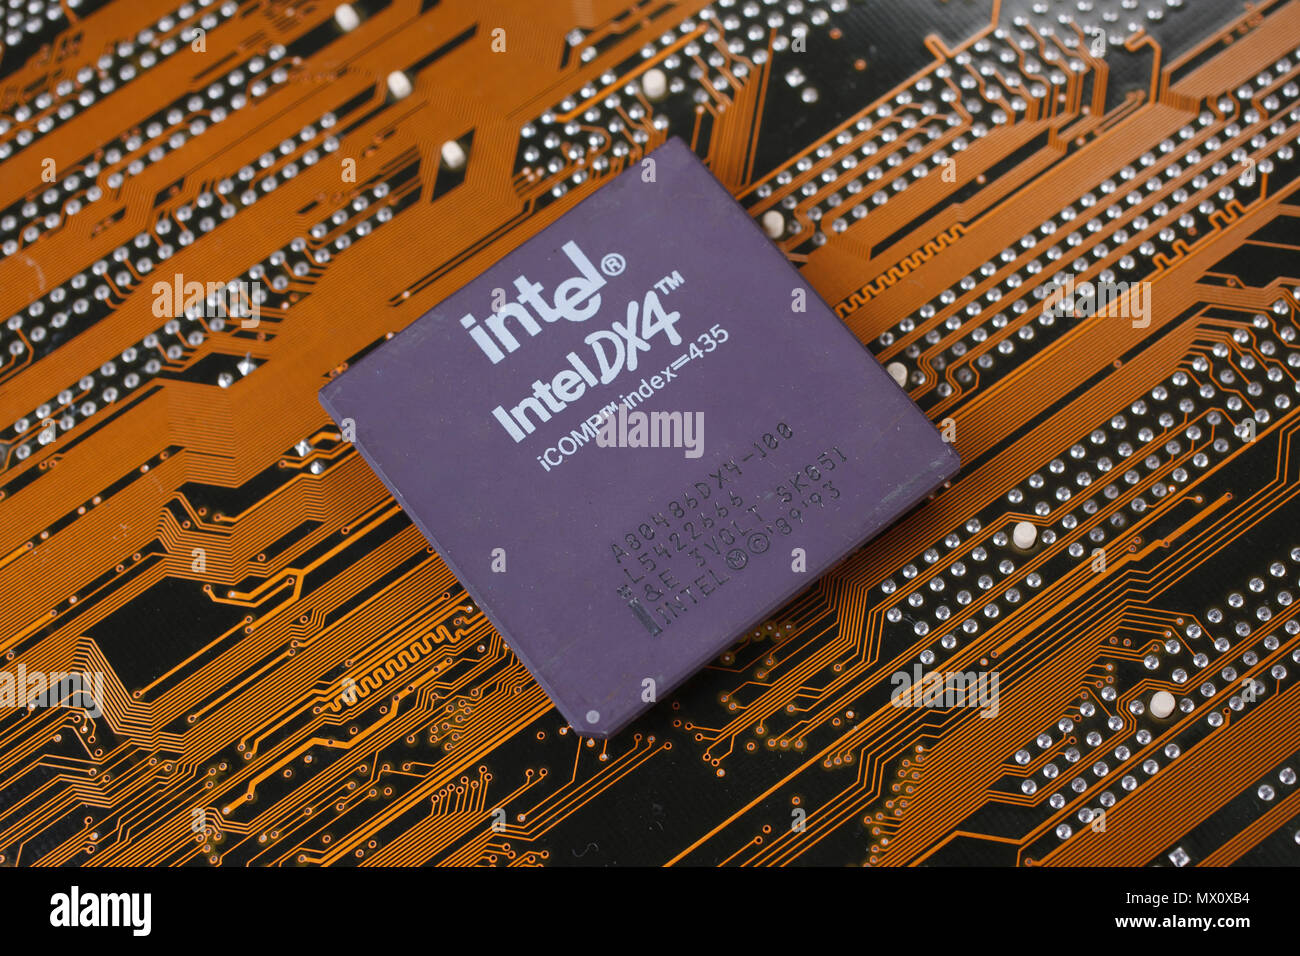 KYIV, UKRAINE - Jan. 28, 2018. Intel 486DX4 processor on motherboard. - Stock Image